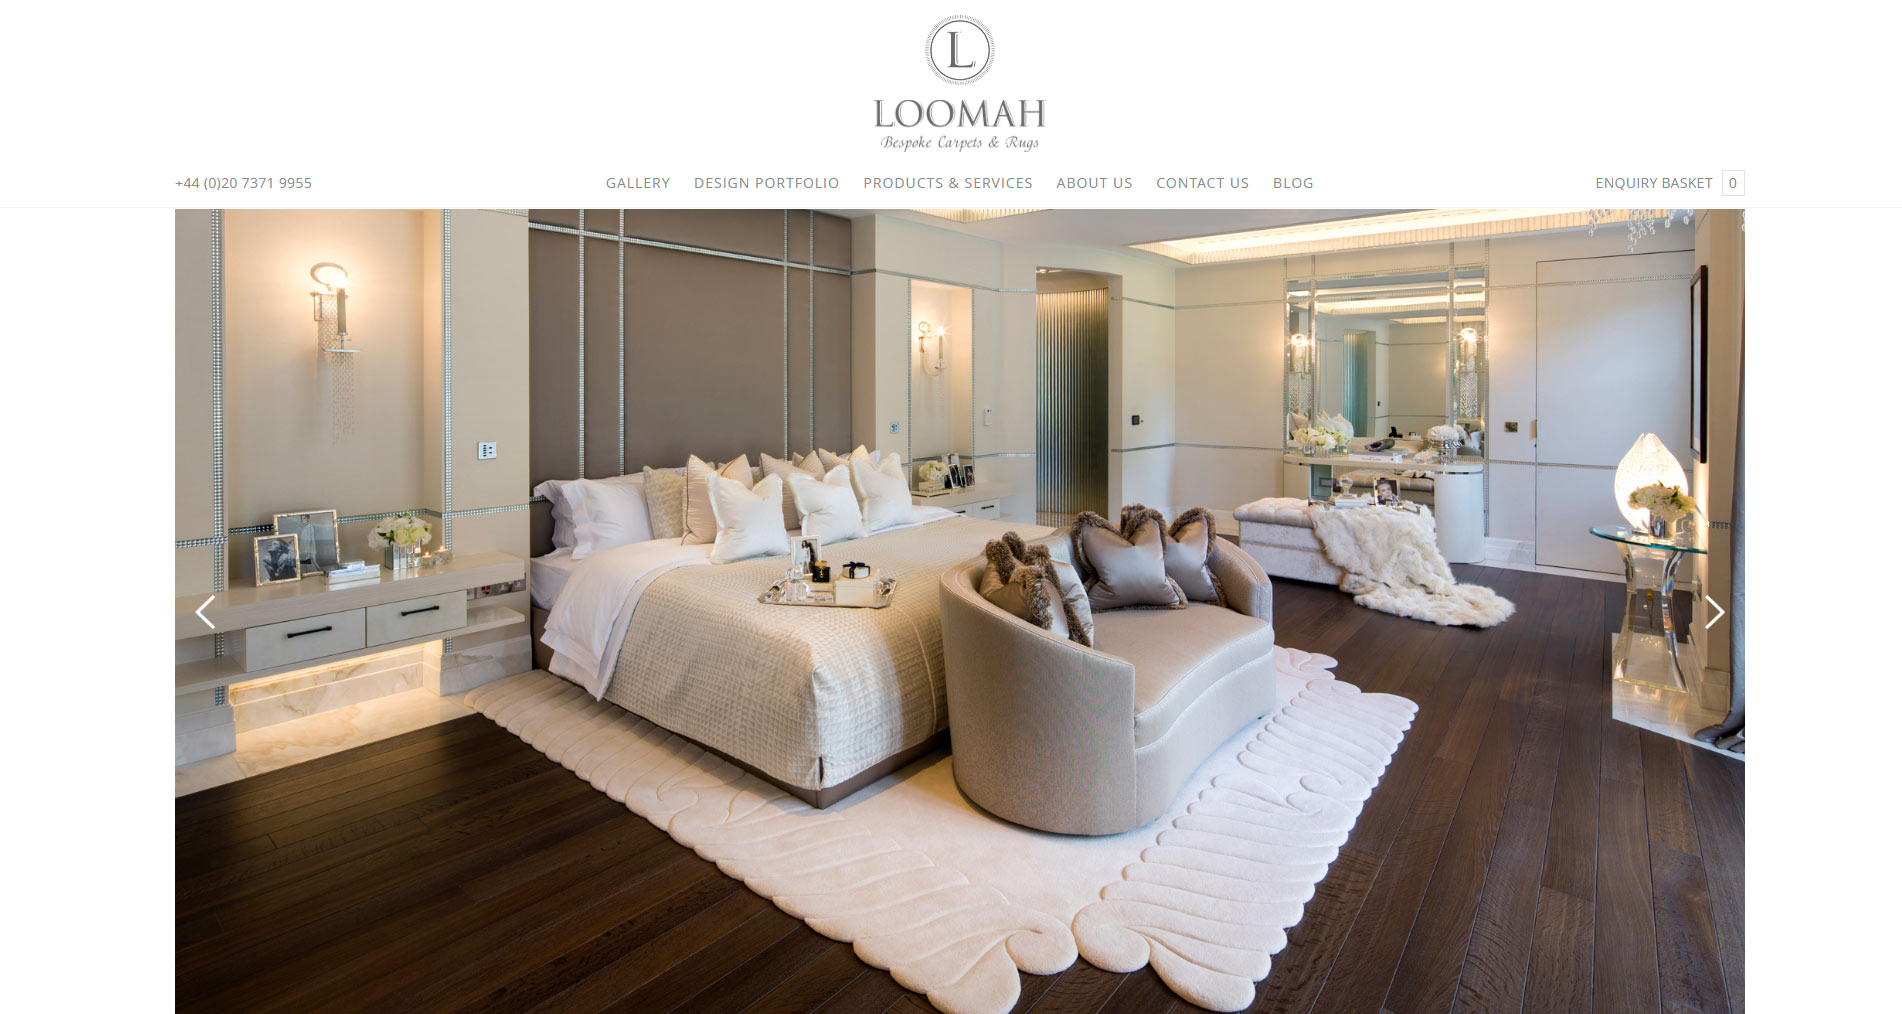 Loomah - Bespoke Carpets and Rugs